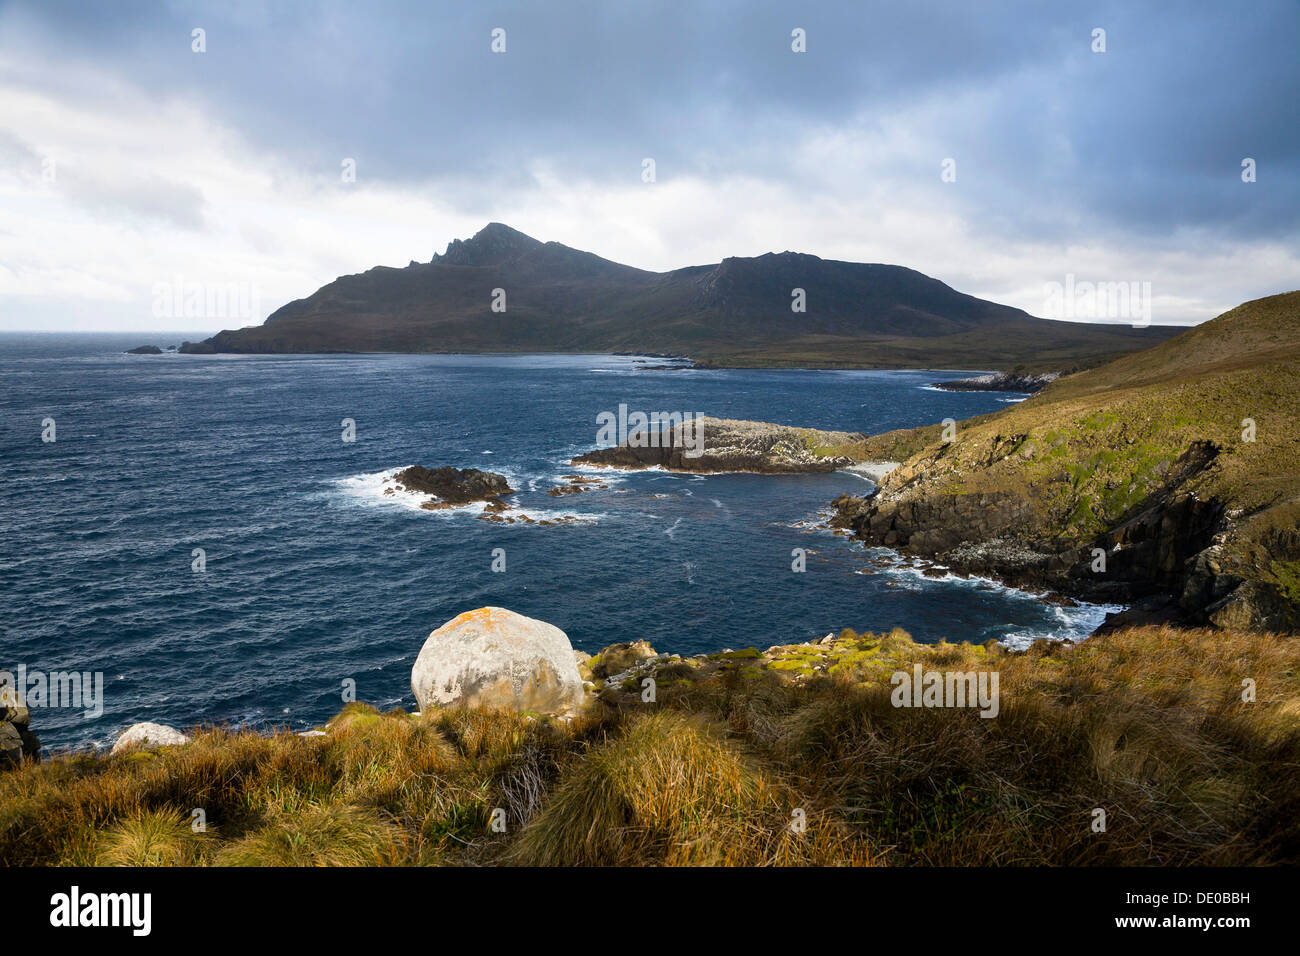 Cape Horn, Chile, South America - Stock Image